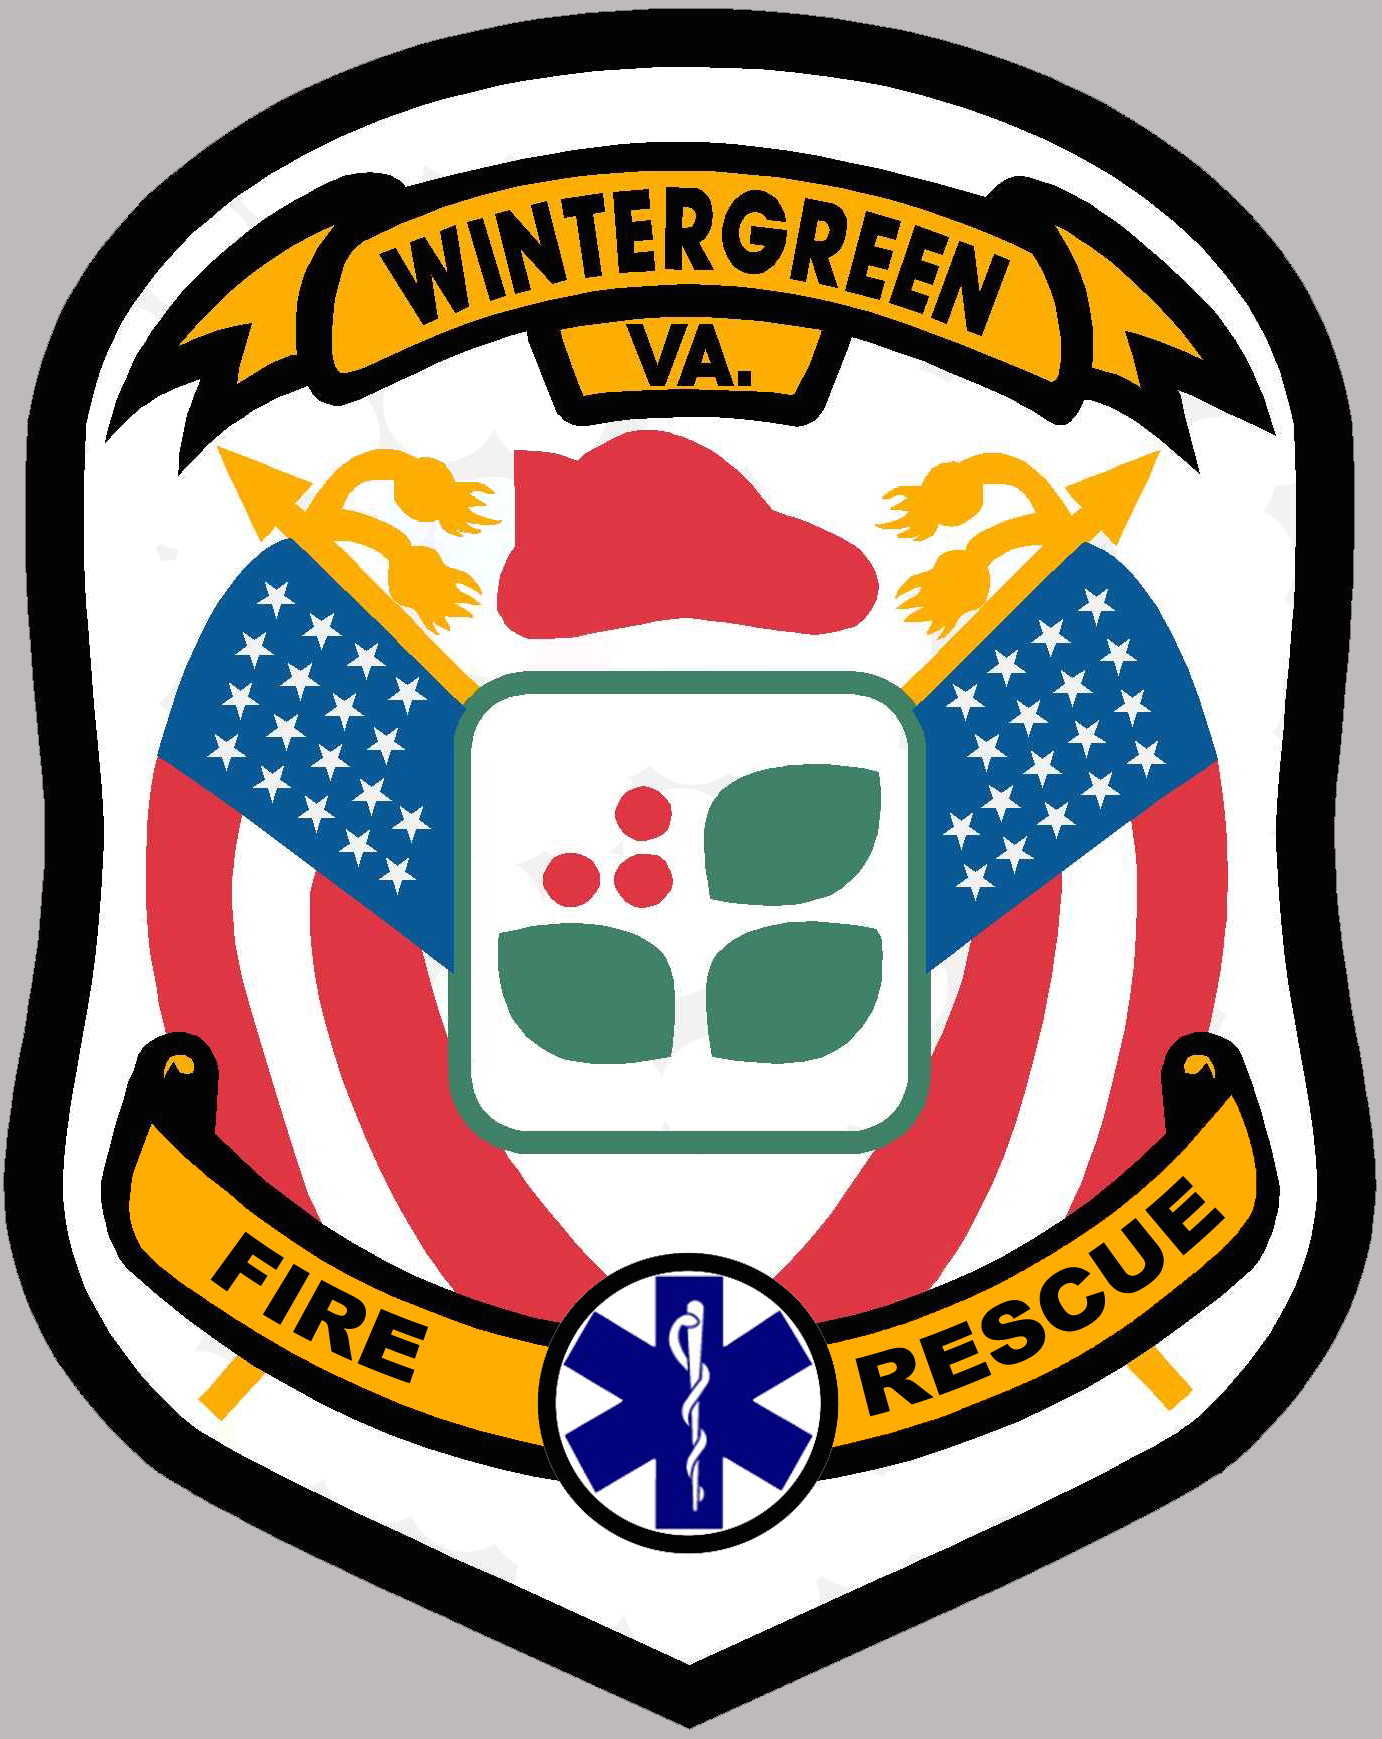 Wintergreen Fire & Rescue